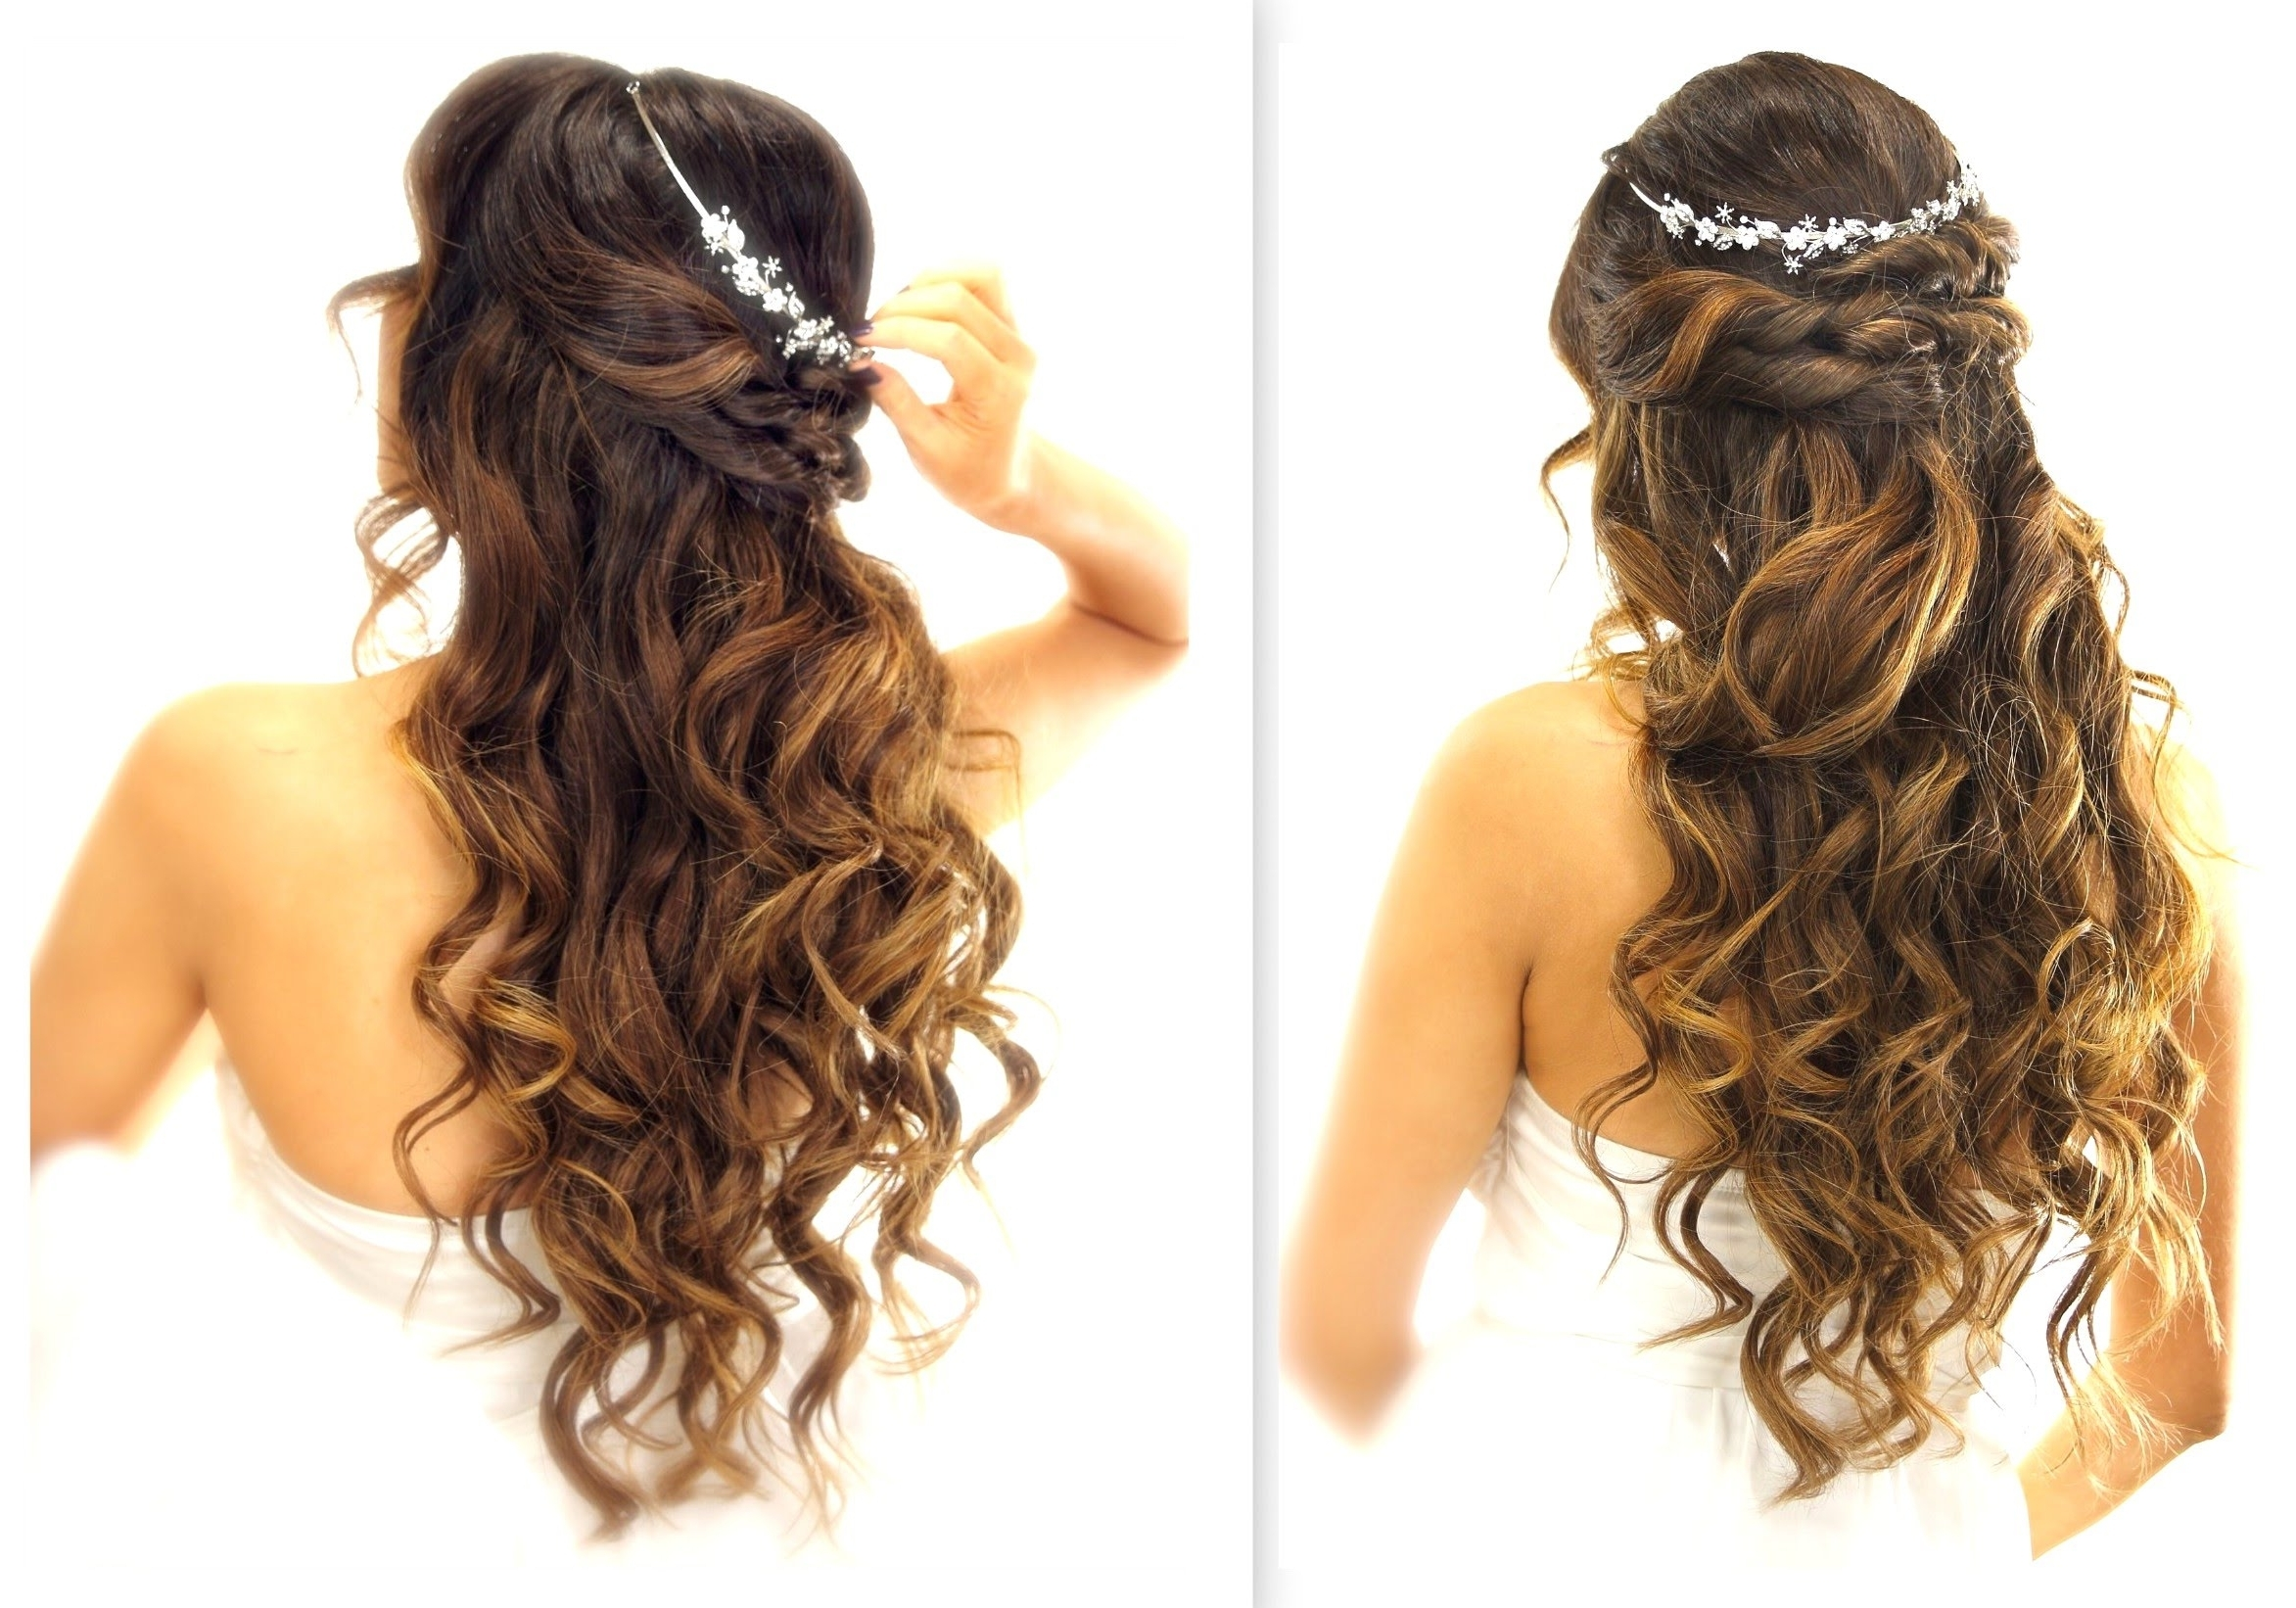 Bridal Hairstyles Pertaining To Most Up To Date Wedding Hairstyles For Long Hair Half Up And Half Down (View 3 of 15)